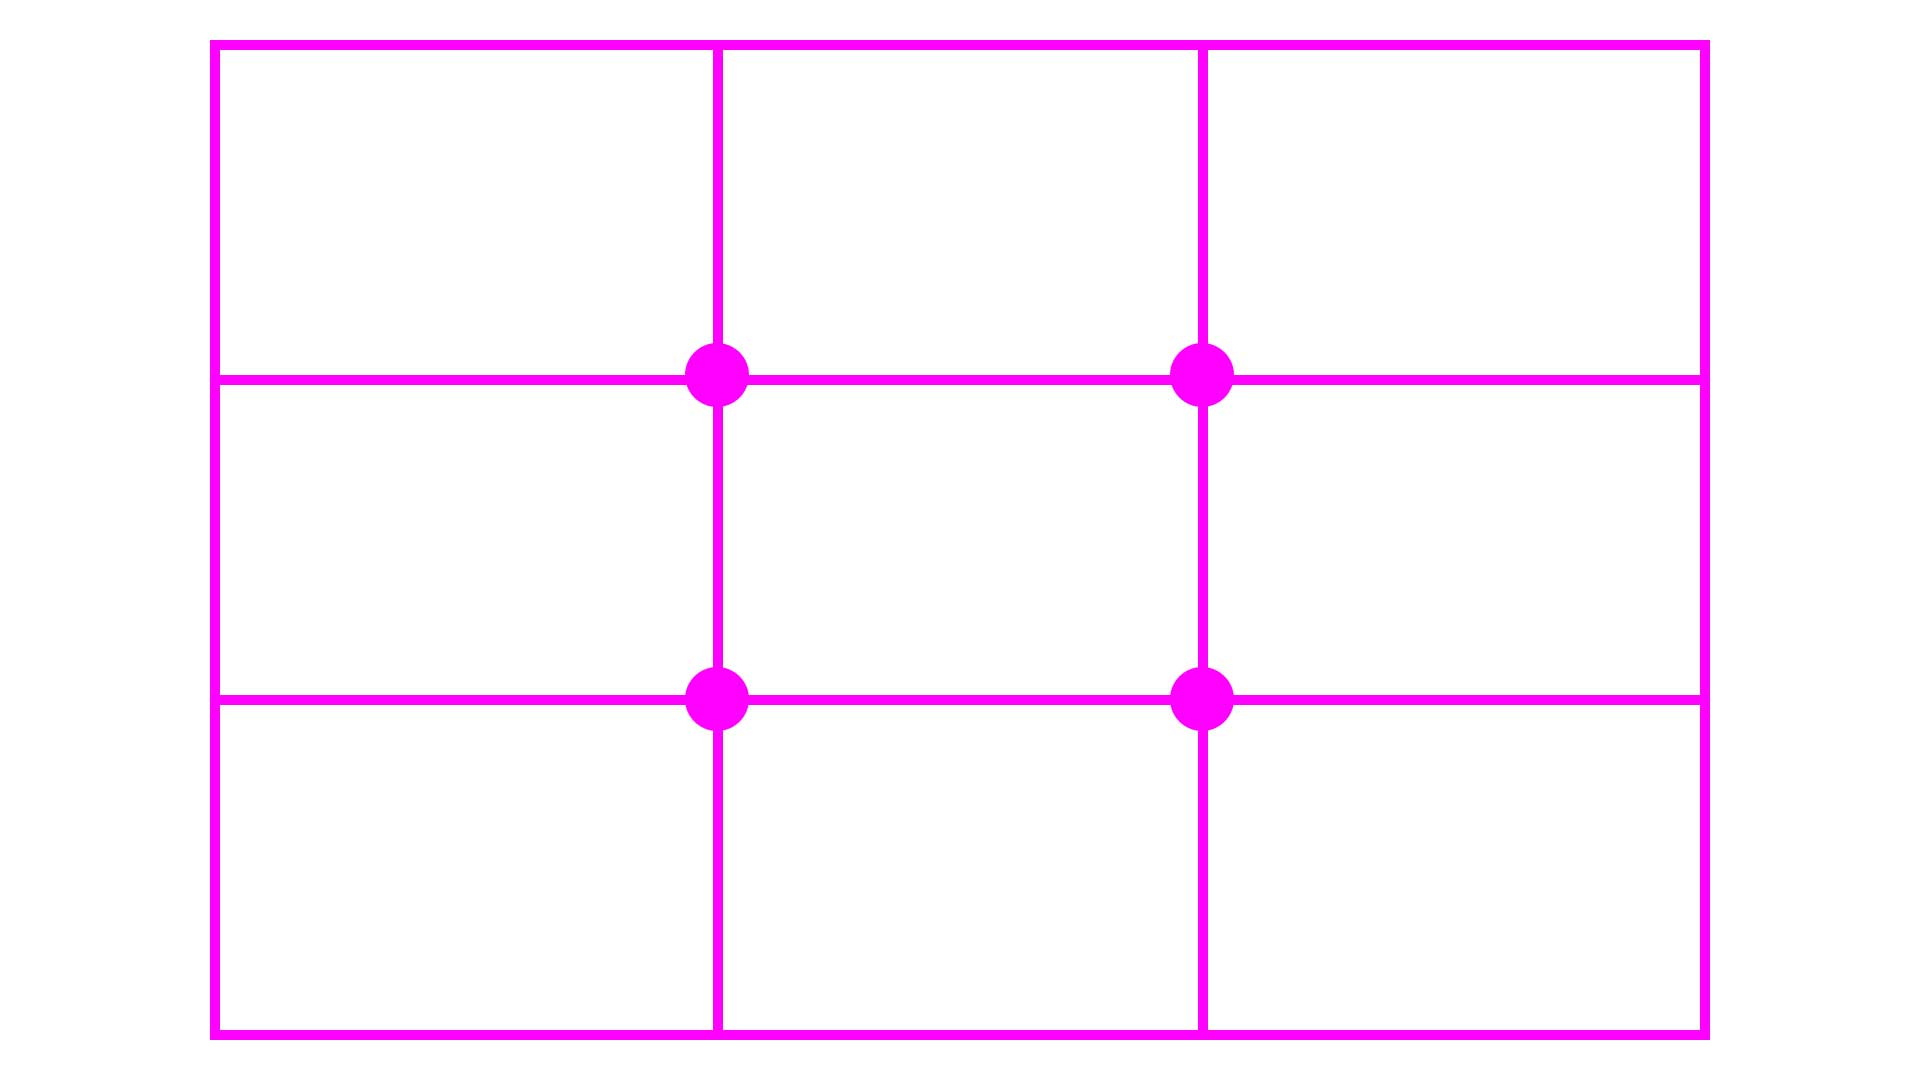 The rule of thirds: divide the canvas into thirds, and place the most important element at one of the intersections.